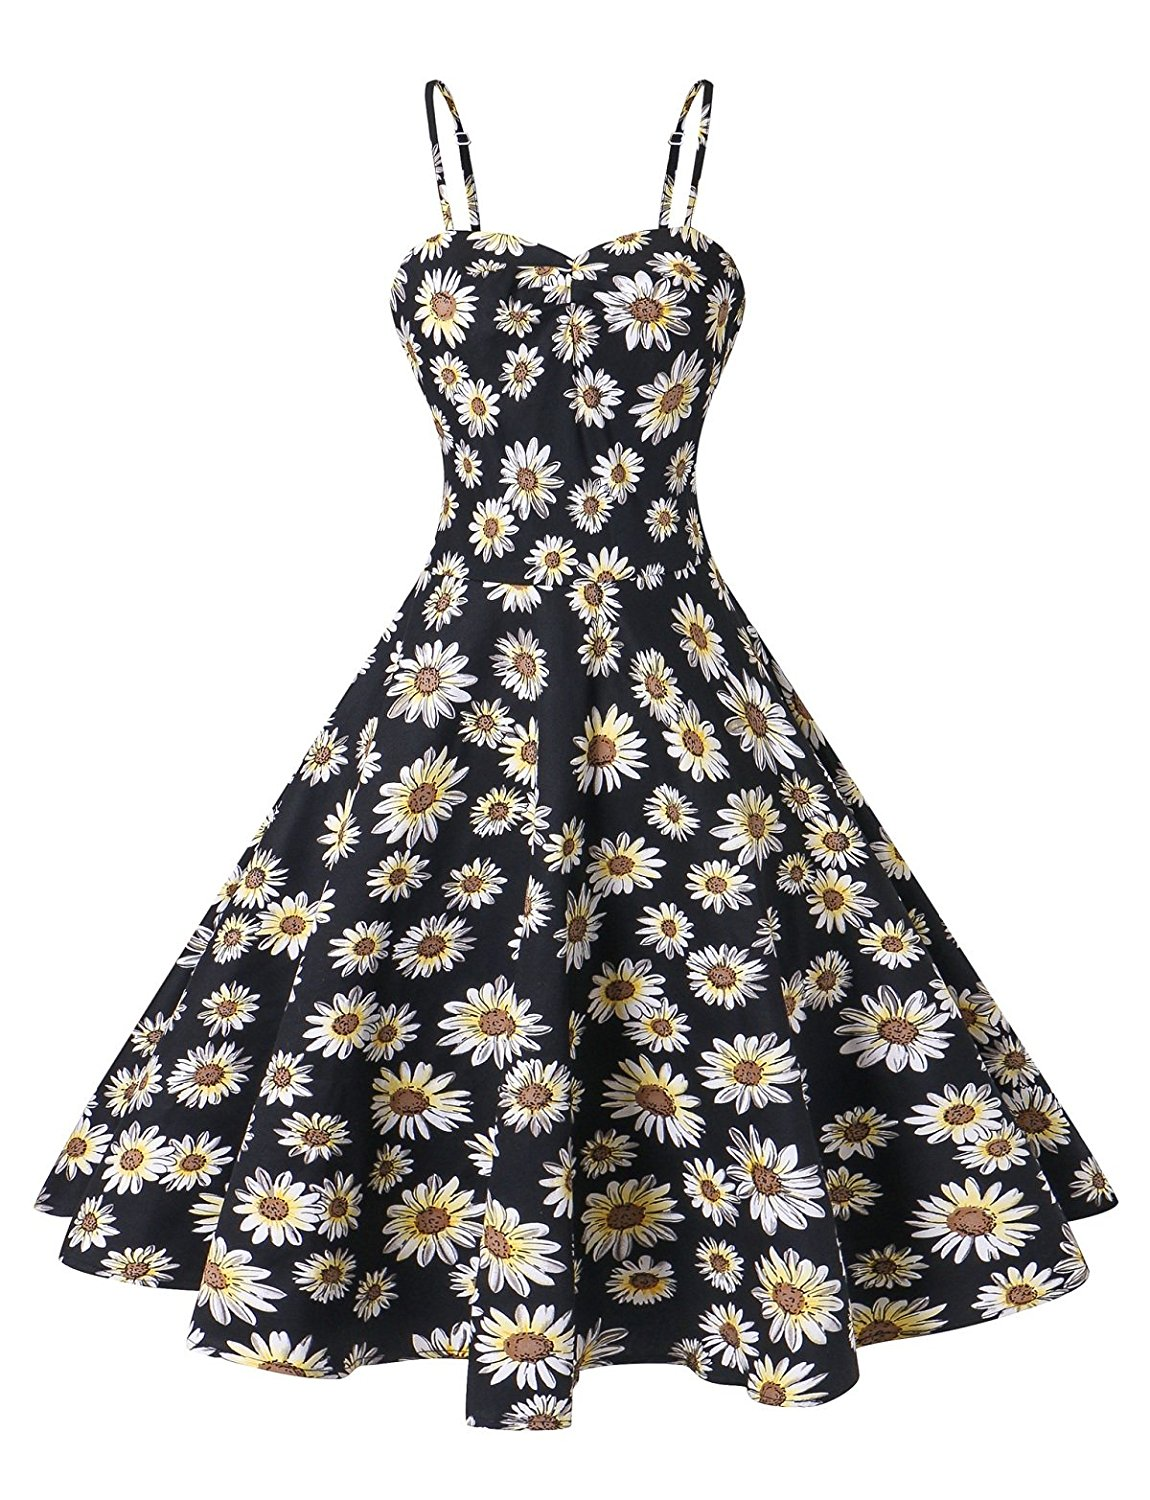 fb5d03aea700 VOGTORY Women s Plus Size Summer Floral Sleeveless Strappy ...